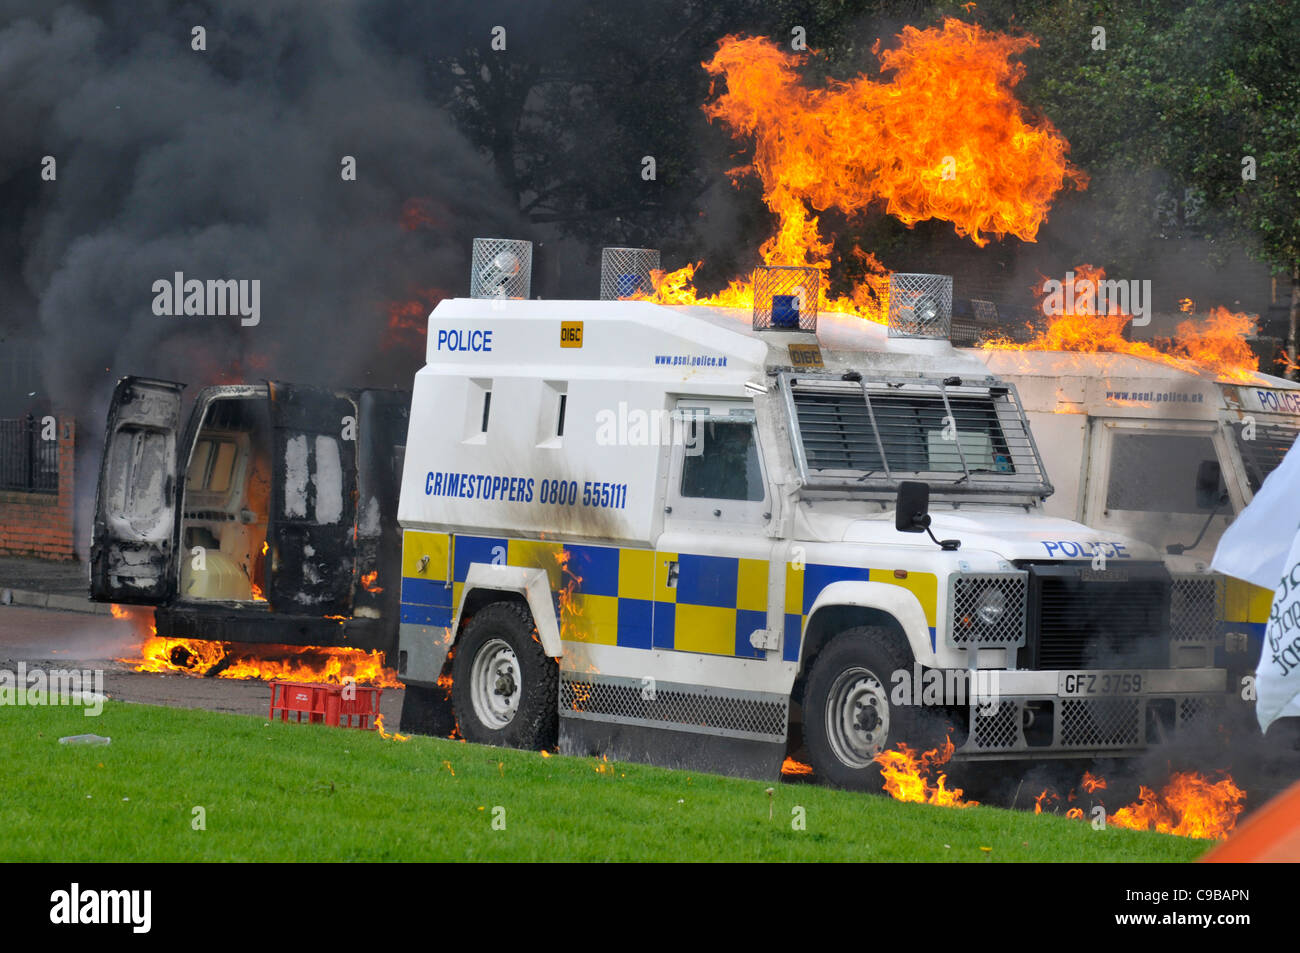 PSNI vehicles set alight by petrol bombs in riots in the Bogside, following a loyalist parade, Londonderry, Northern - Stock Image